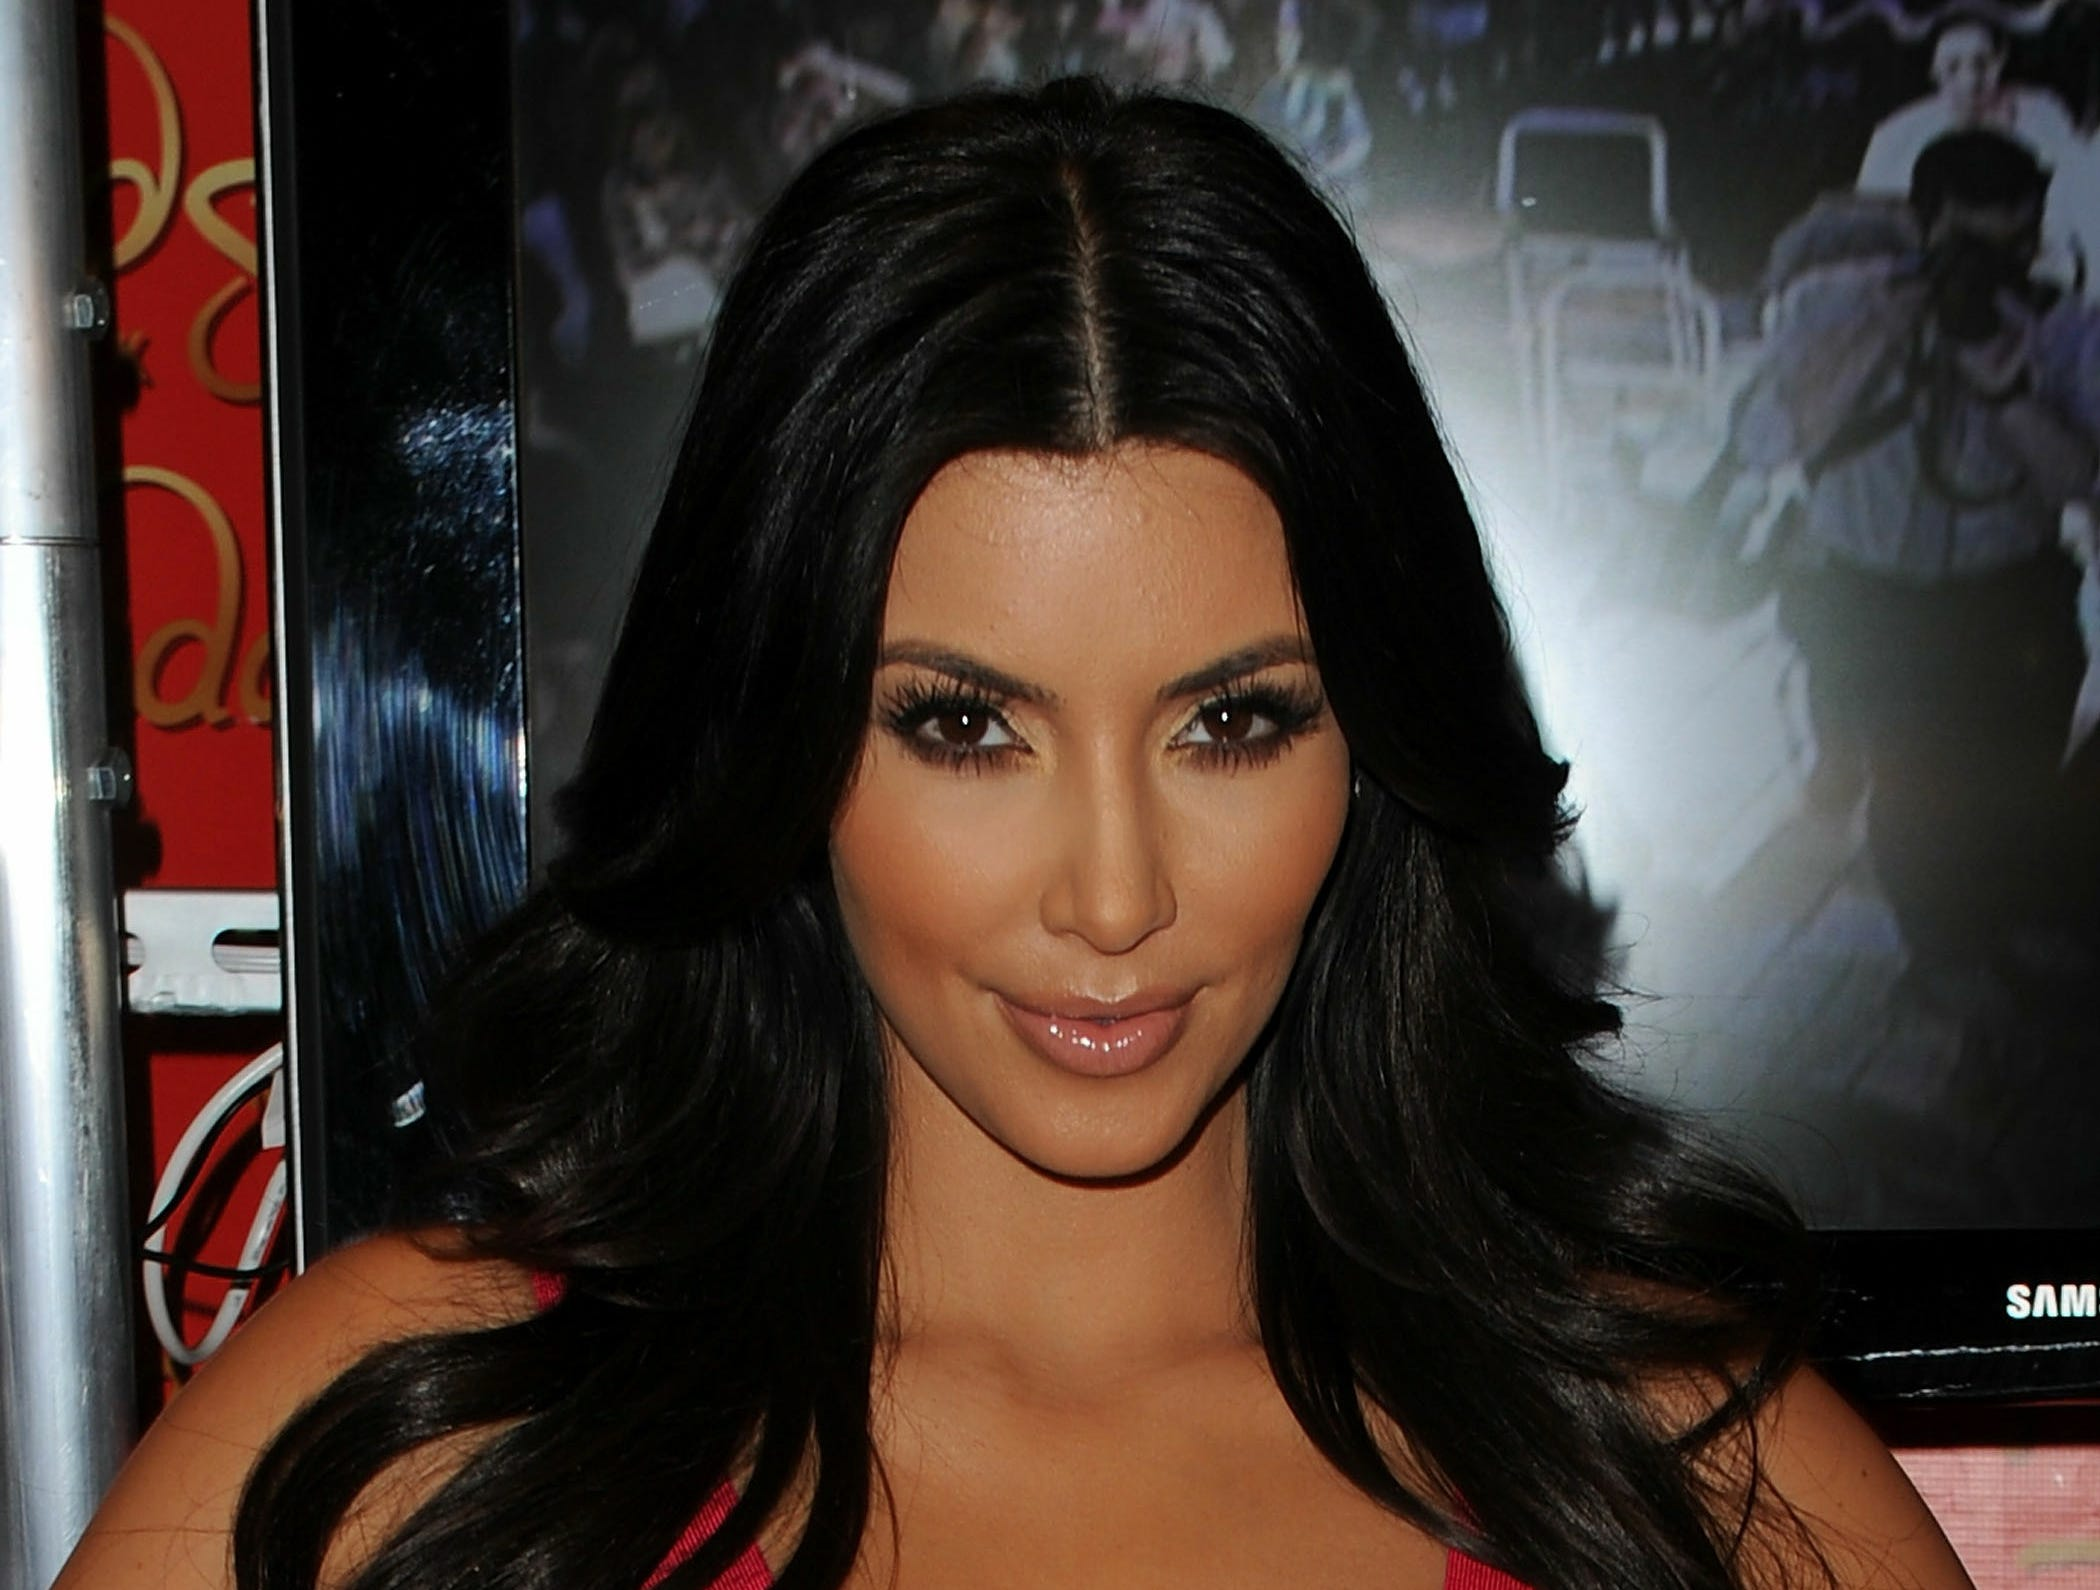 ORG XMIT: 102383184 NEW YORK - JULY 01:  TV personality Kim Kardashian attends her wax figure unveiling at Madame Tussauds on July 1, 2010 in New York City.  (Photo by Stephen Lovekin/Getty Images) GTY ID: 383184SL004_Kim_Kardashi